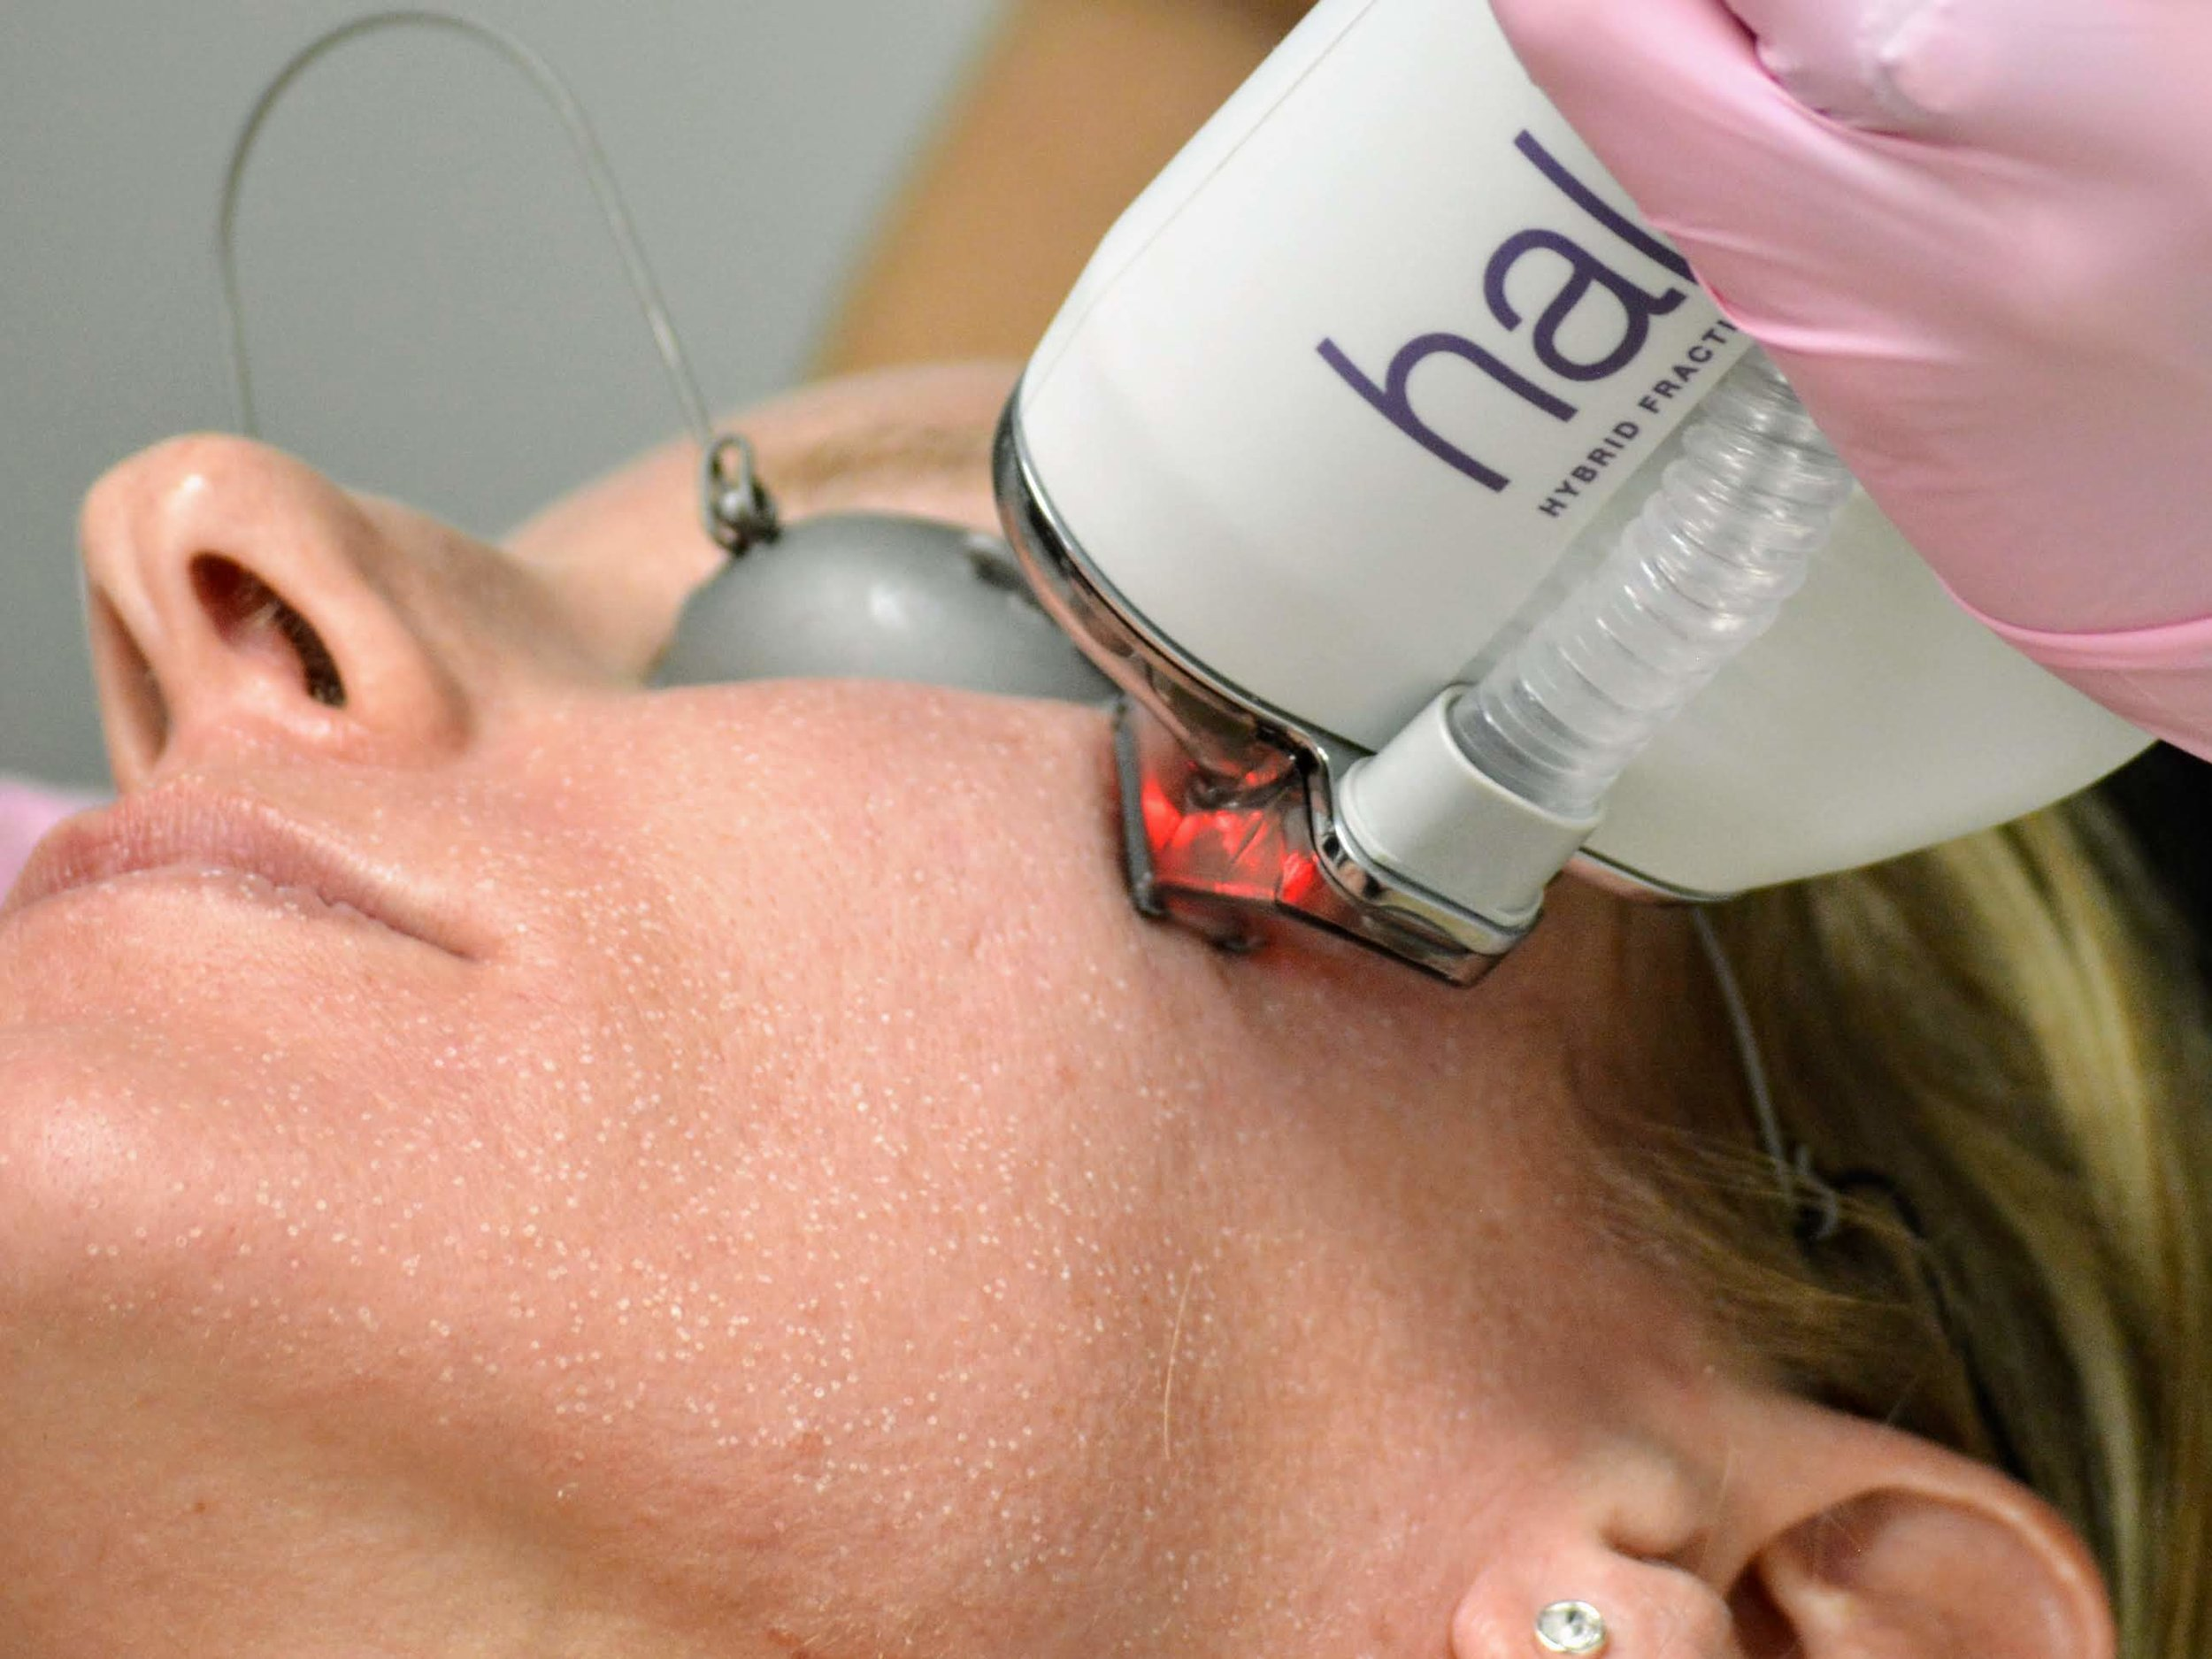 Halo laser skin resurfacing procedure in our med spa